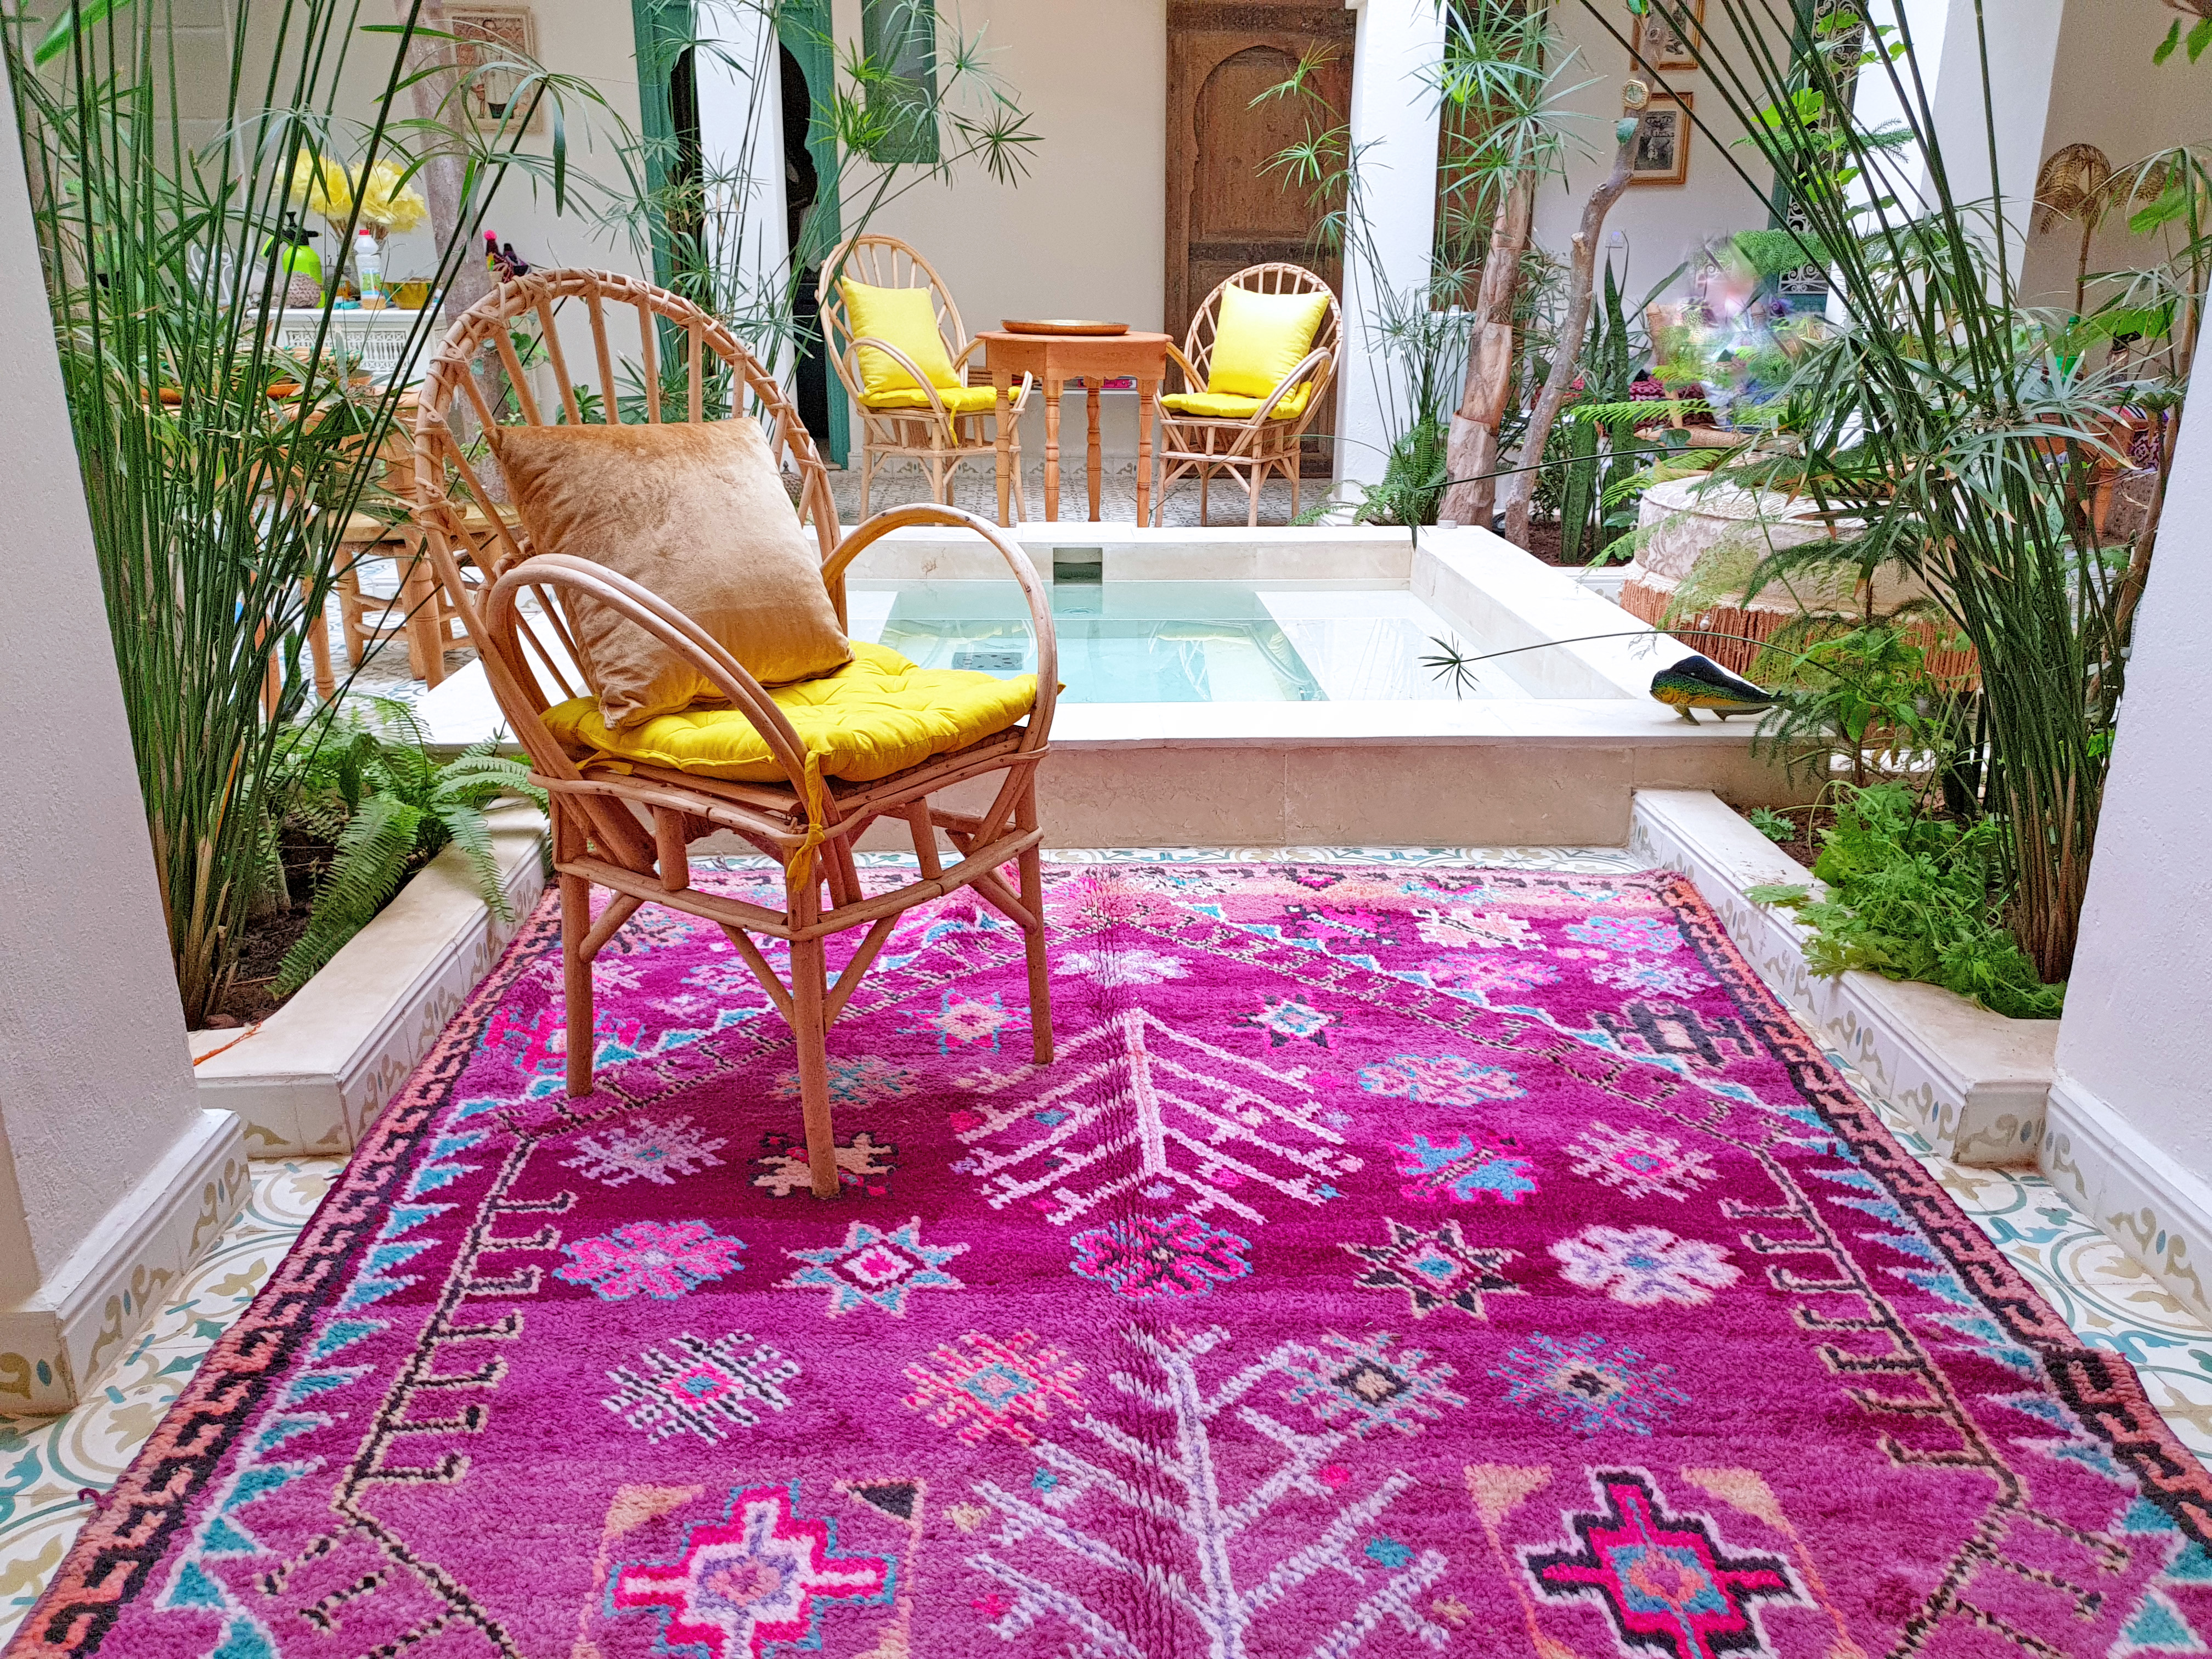 Boujad Rugs, hand-woven, one-of-a-kind rugs from the Middle Atlas region of Morocco. They typically feature asymmetrical geometric patterns and orange, pink, vibrant blue, and Fuschia color palettes. Boujads are primarily made from locally sourced wool, with occasional bits of cotton or acrylic. https://www.berberbazar.com/